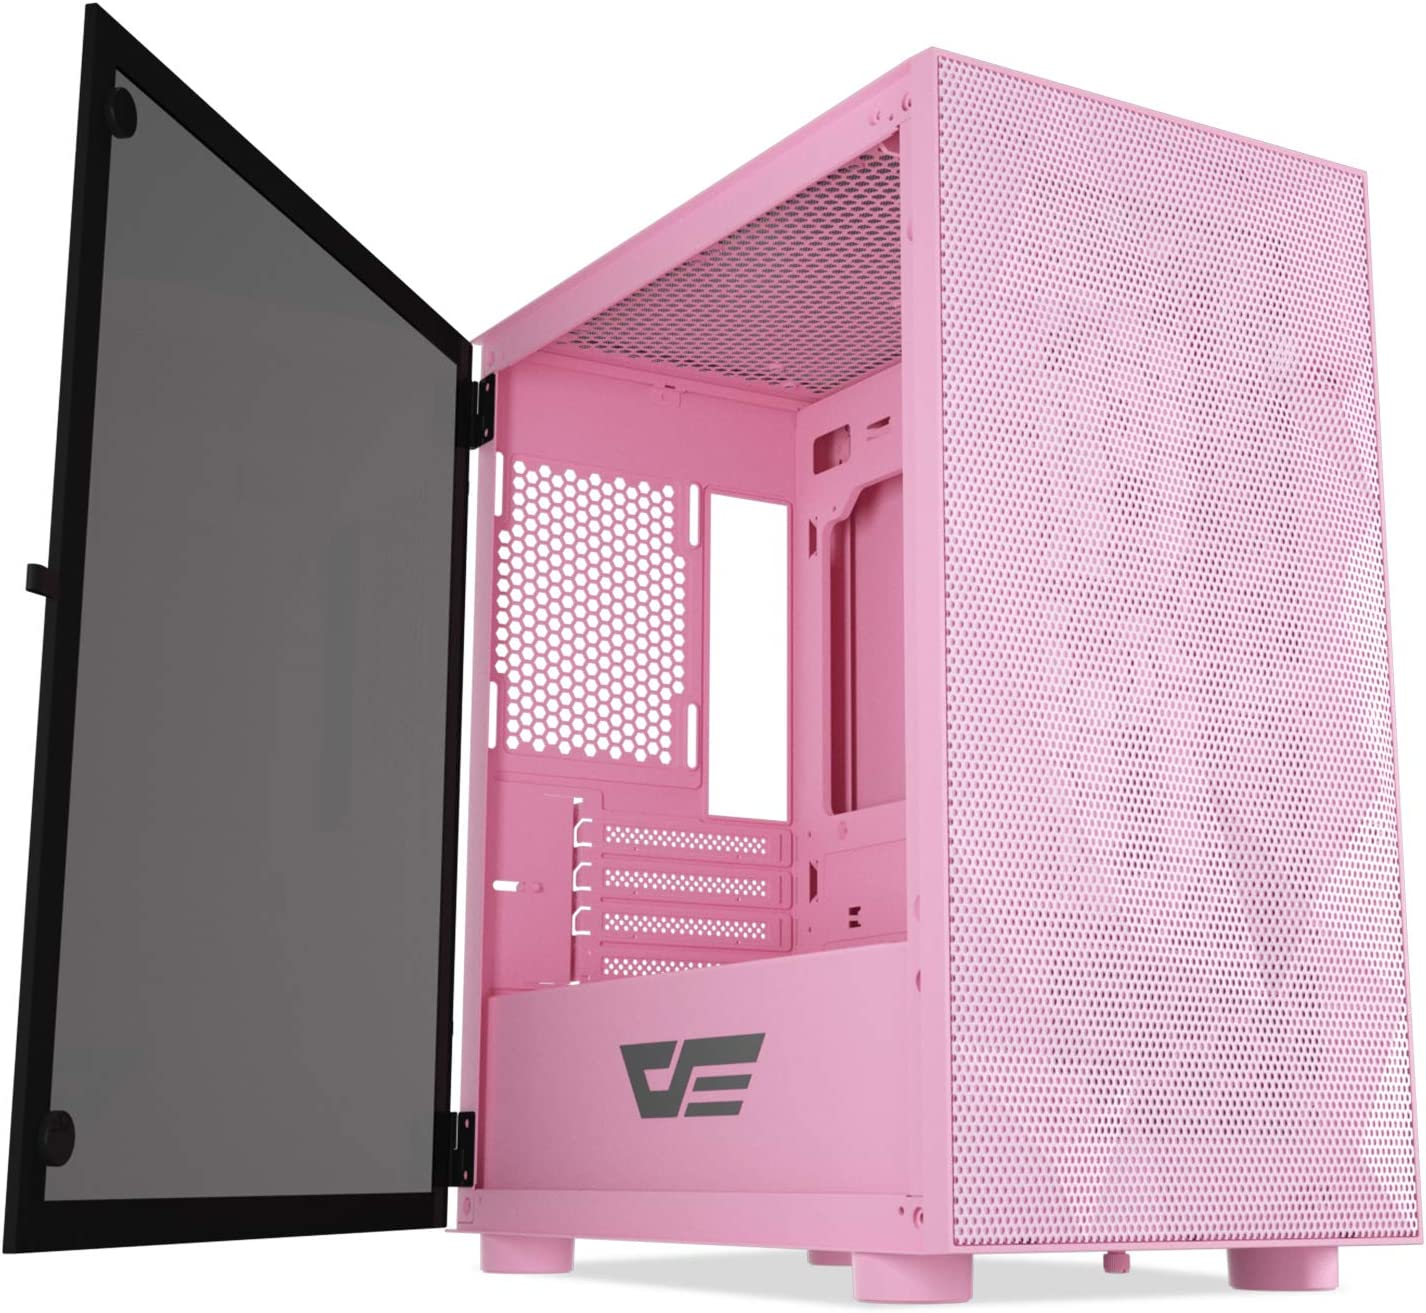 darkFlash DLM21 MESH Micro ATX Mini ITX Tower MicroATX Computer Case with Door Opening Tempered Glass Side Panel & Mesh Front Panel (DLM21 MESH Pink)